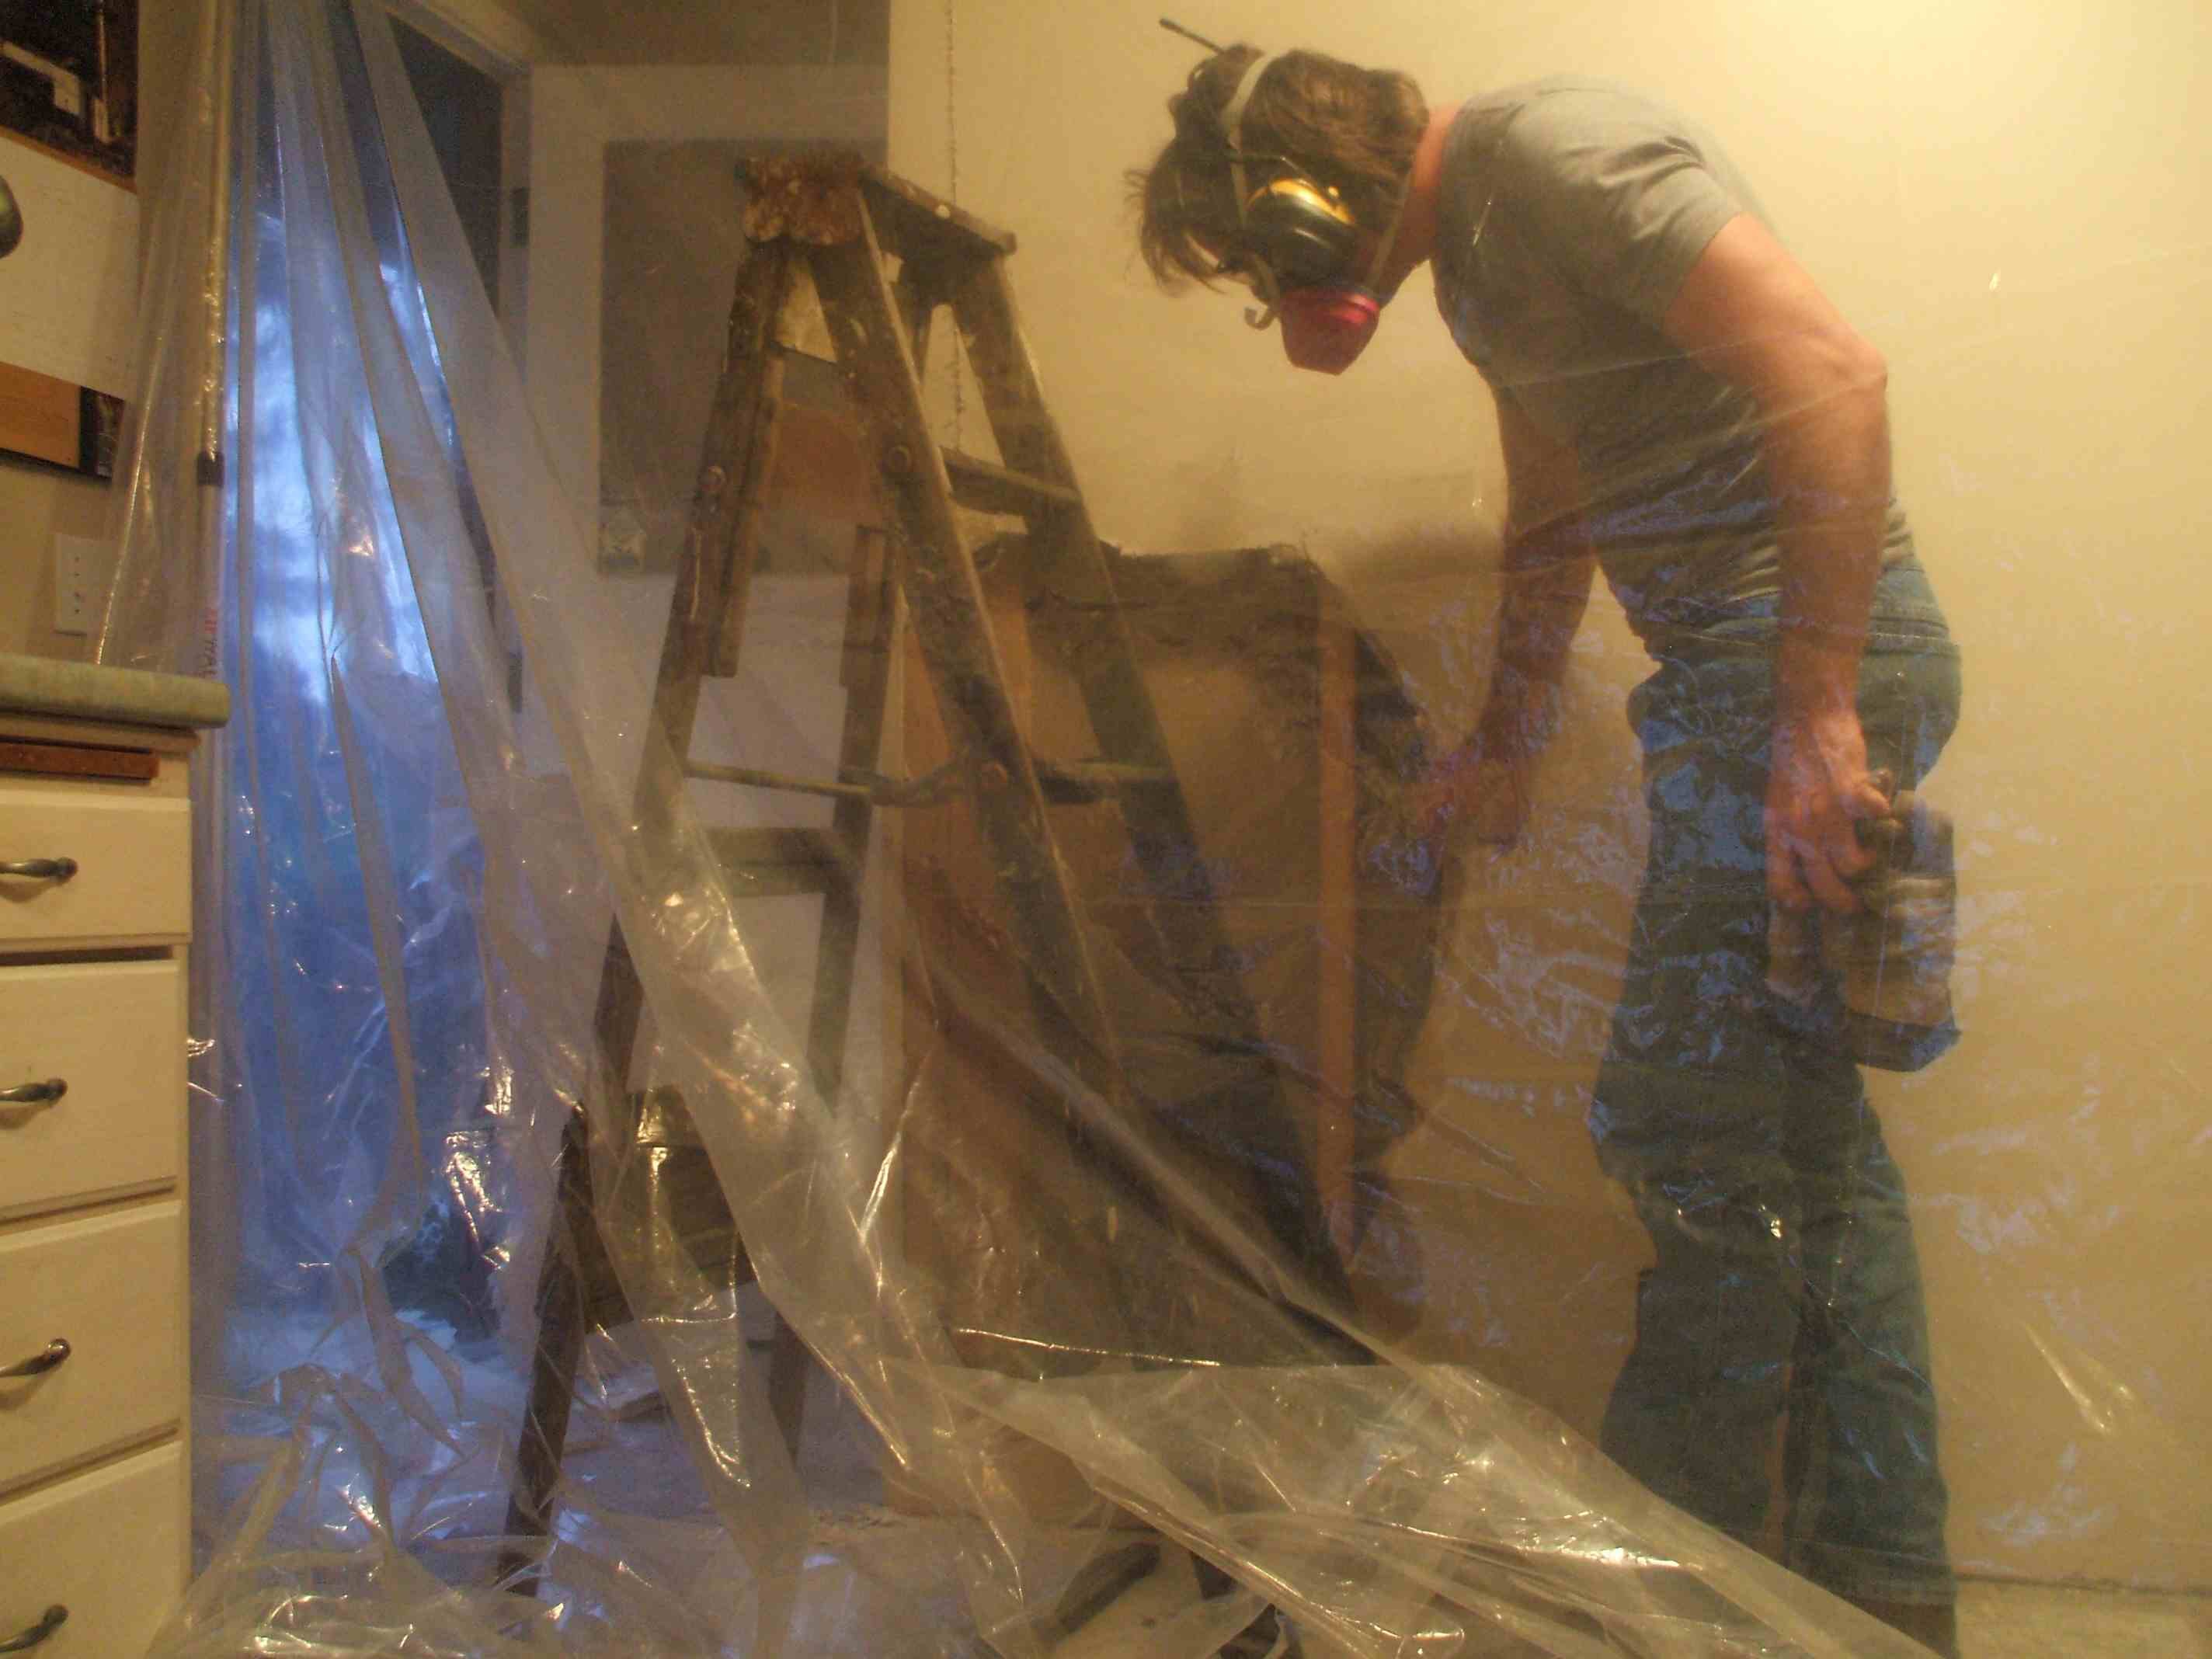 A man pulling out sections of drywall